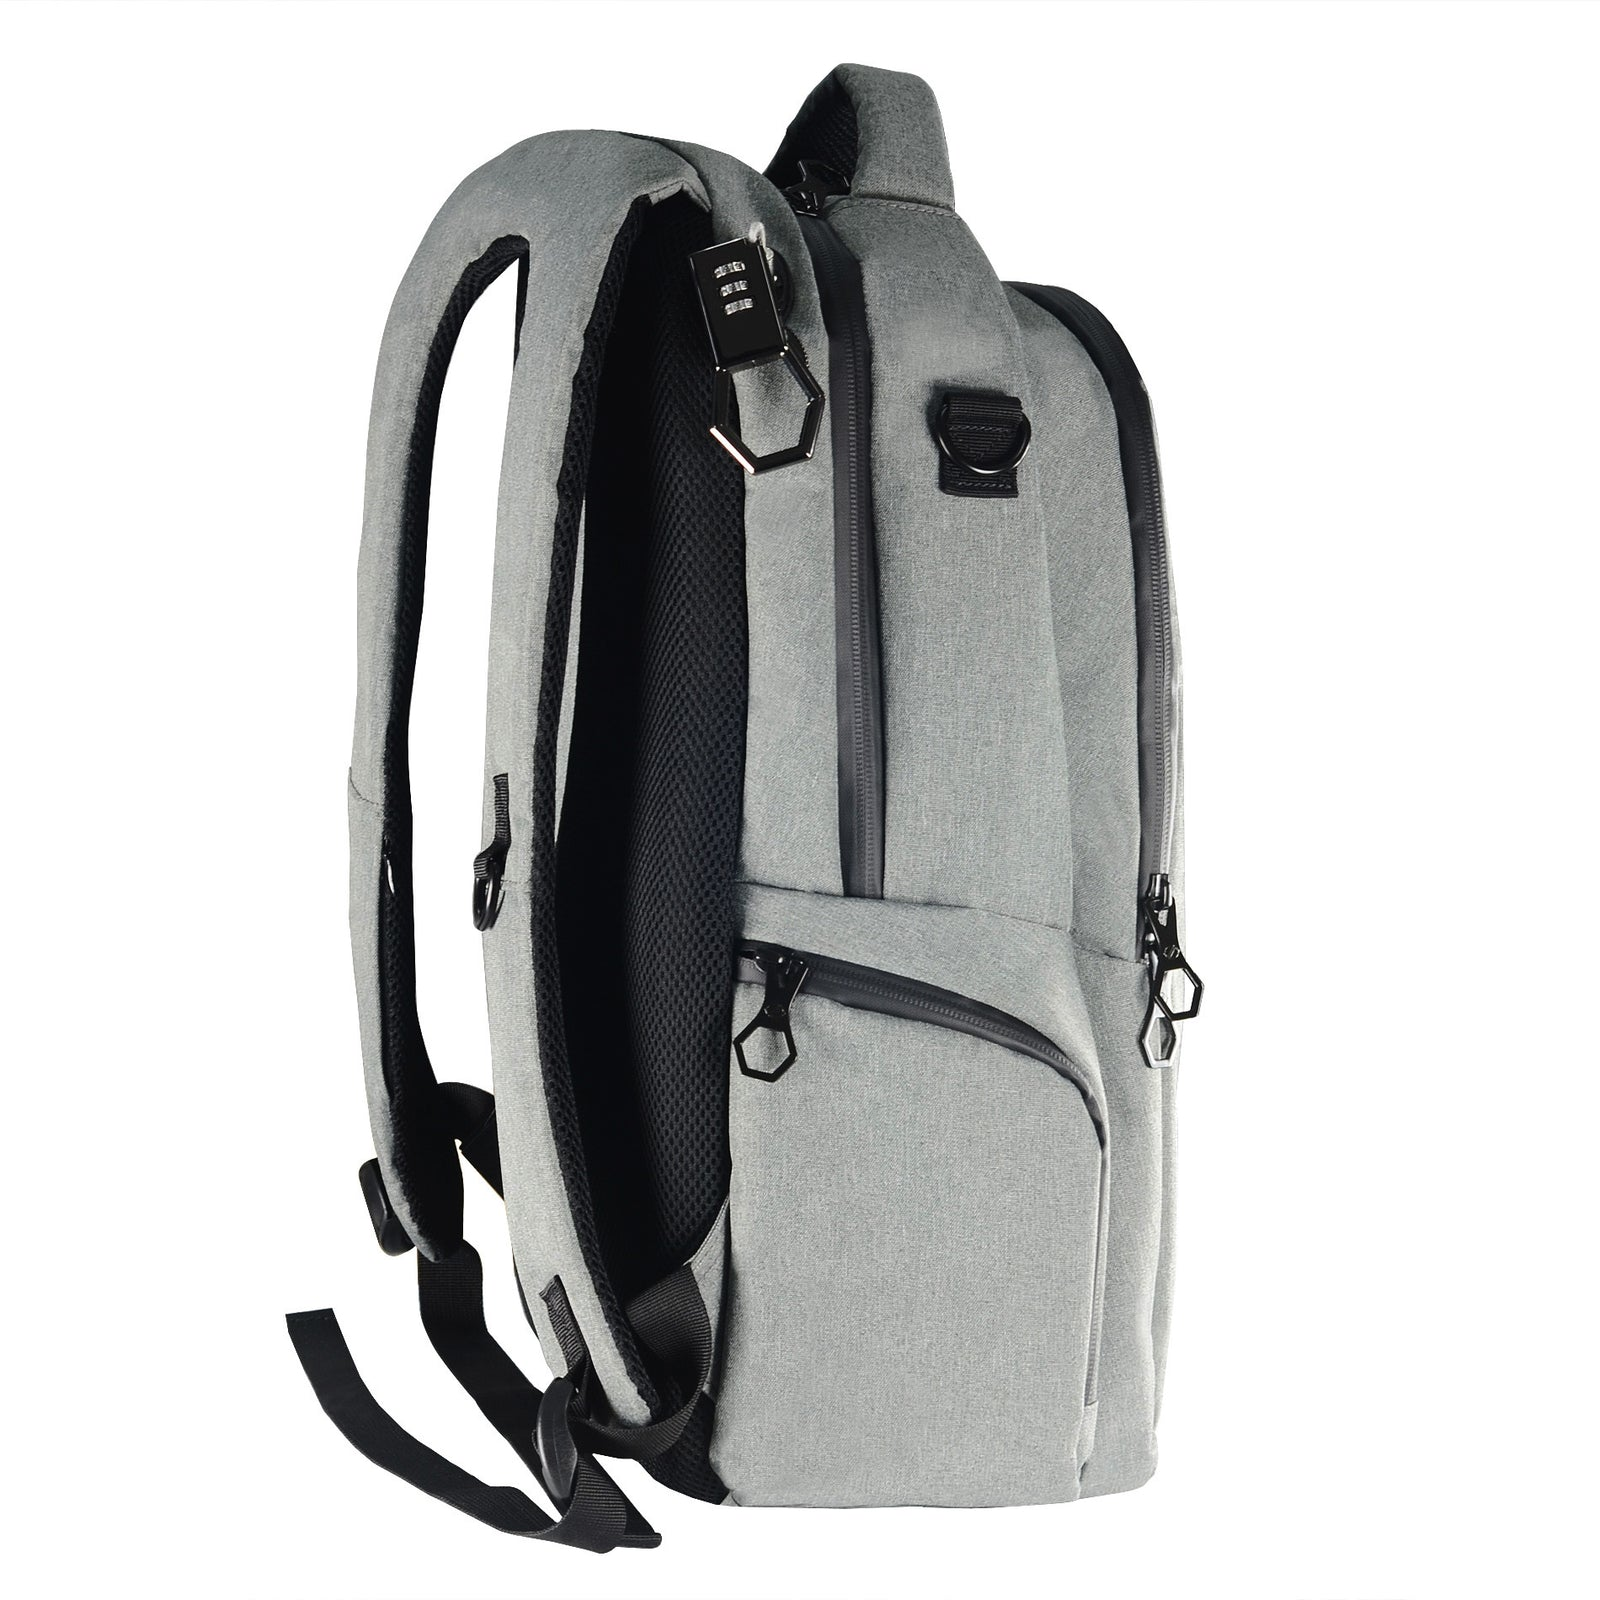 [Commuter Style] Urban Backpack - Grey [Shipping to US Only]